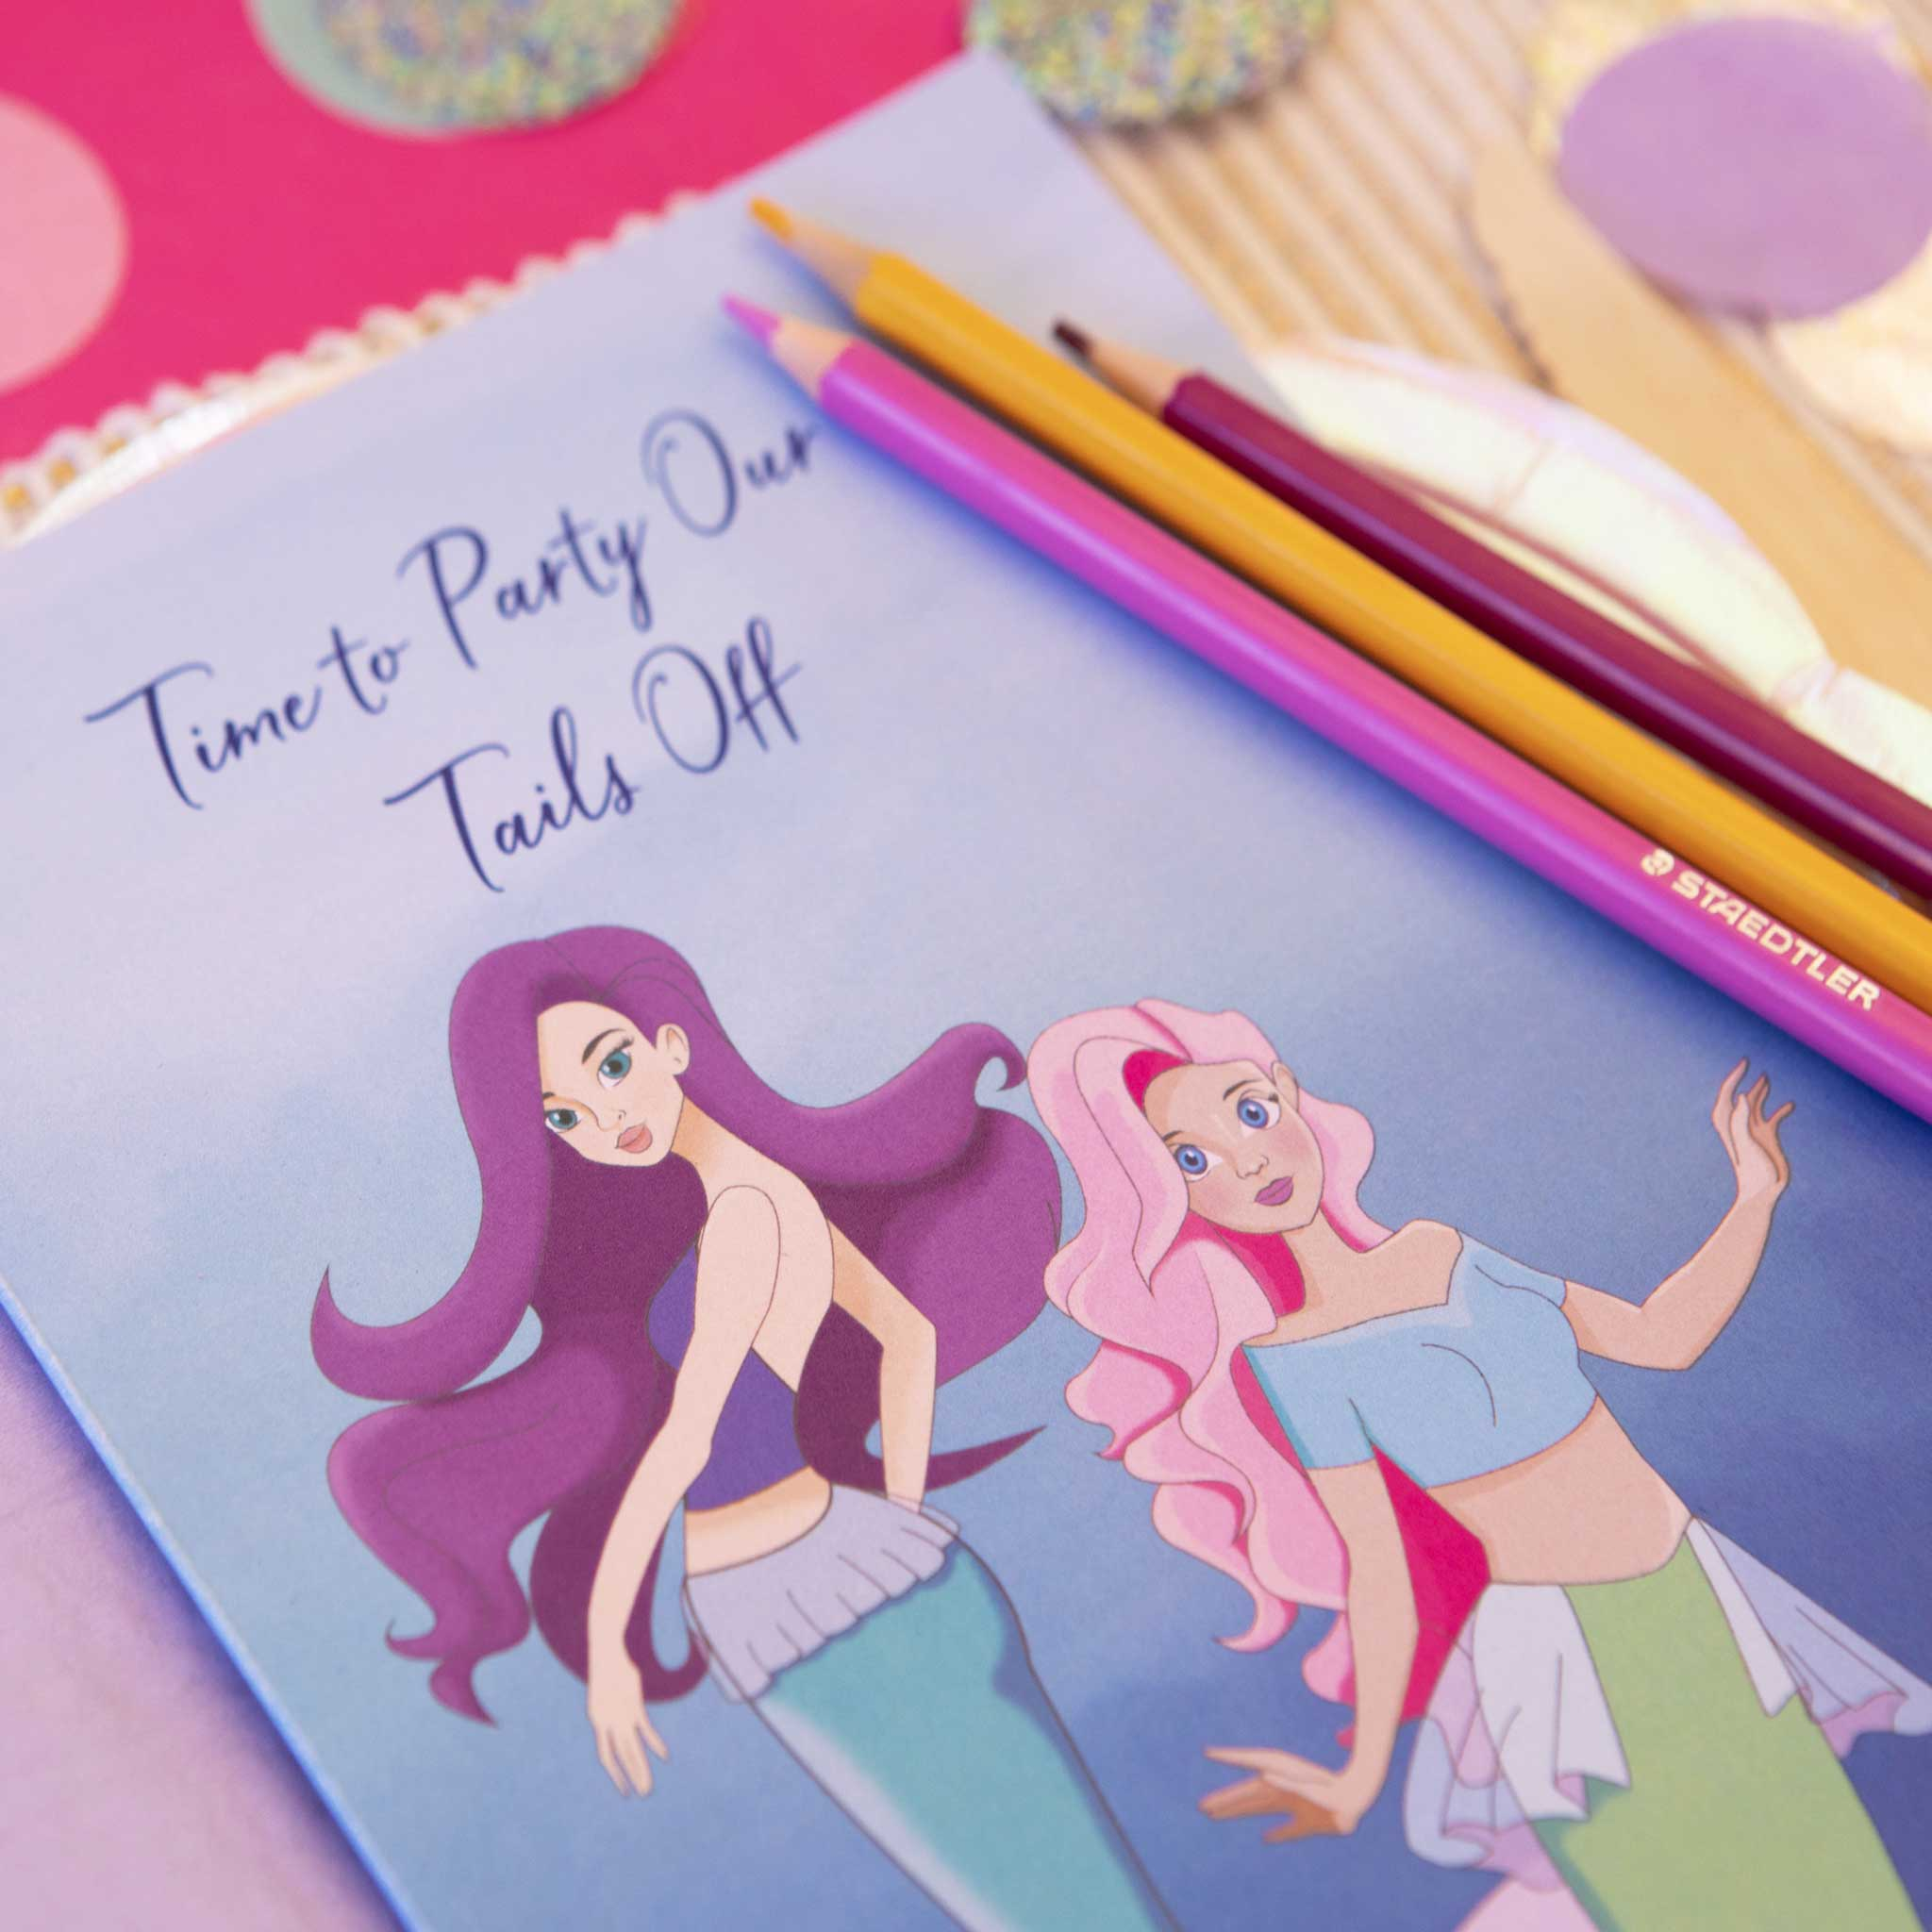 Mermaid Party Activity Booklet Bundle Pack - 10 people - The Party Pack Co